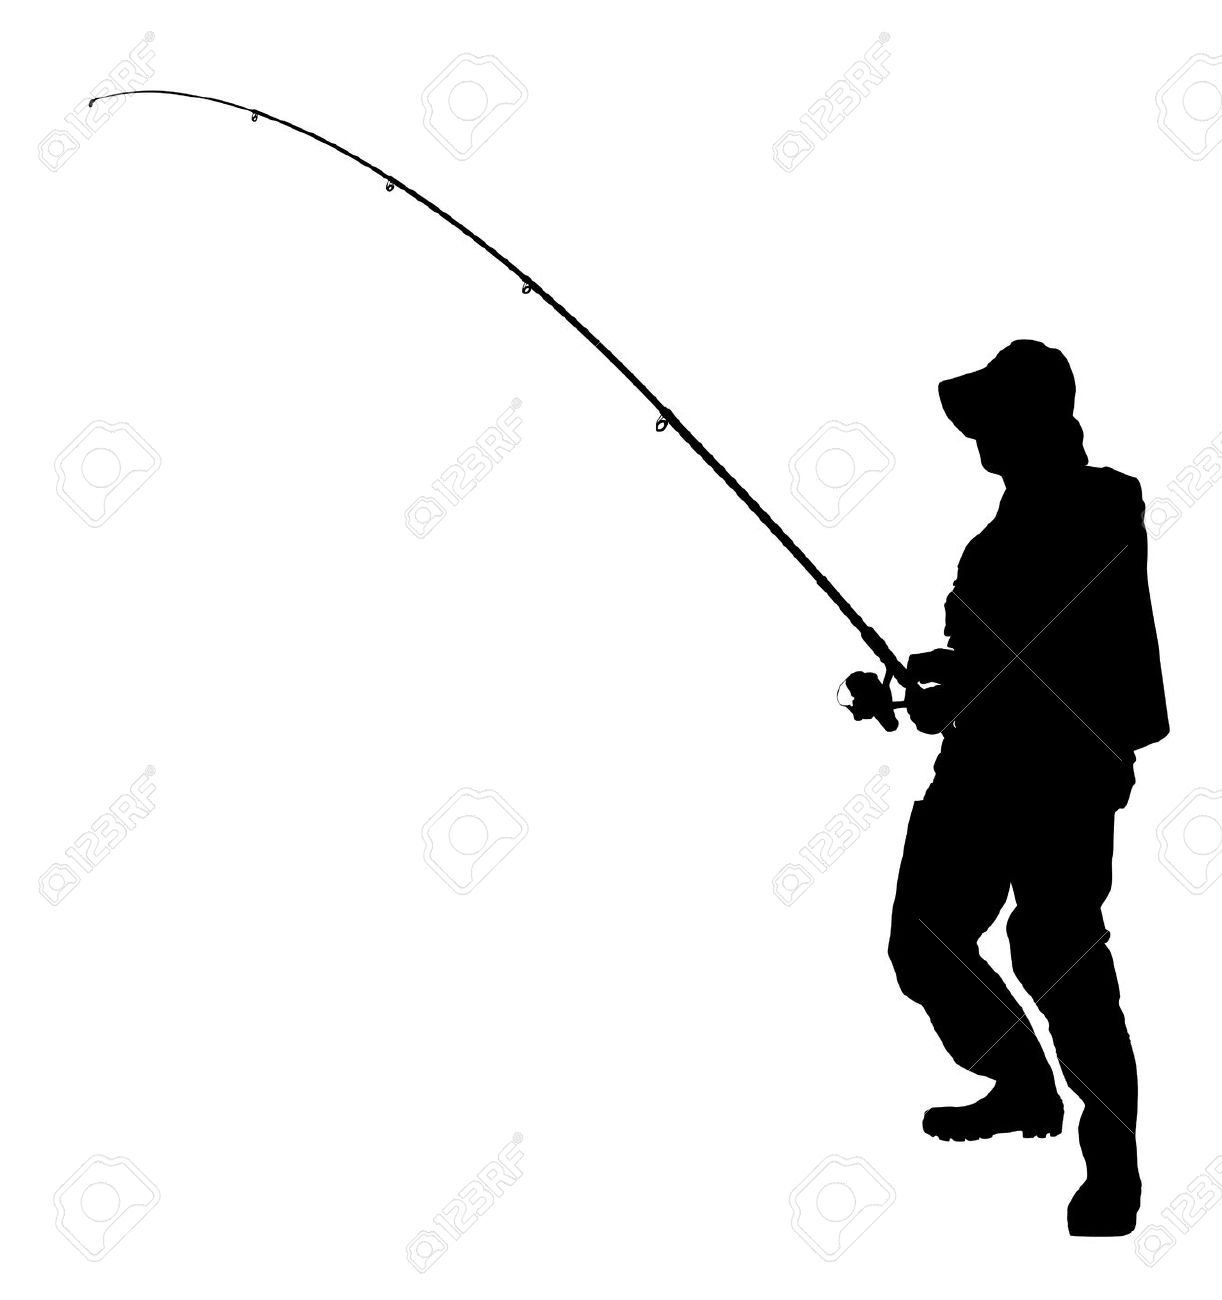 1222x1300 Image Result For Silhouette Patterns Fishing Crafts